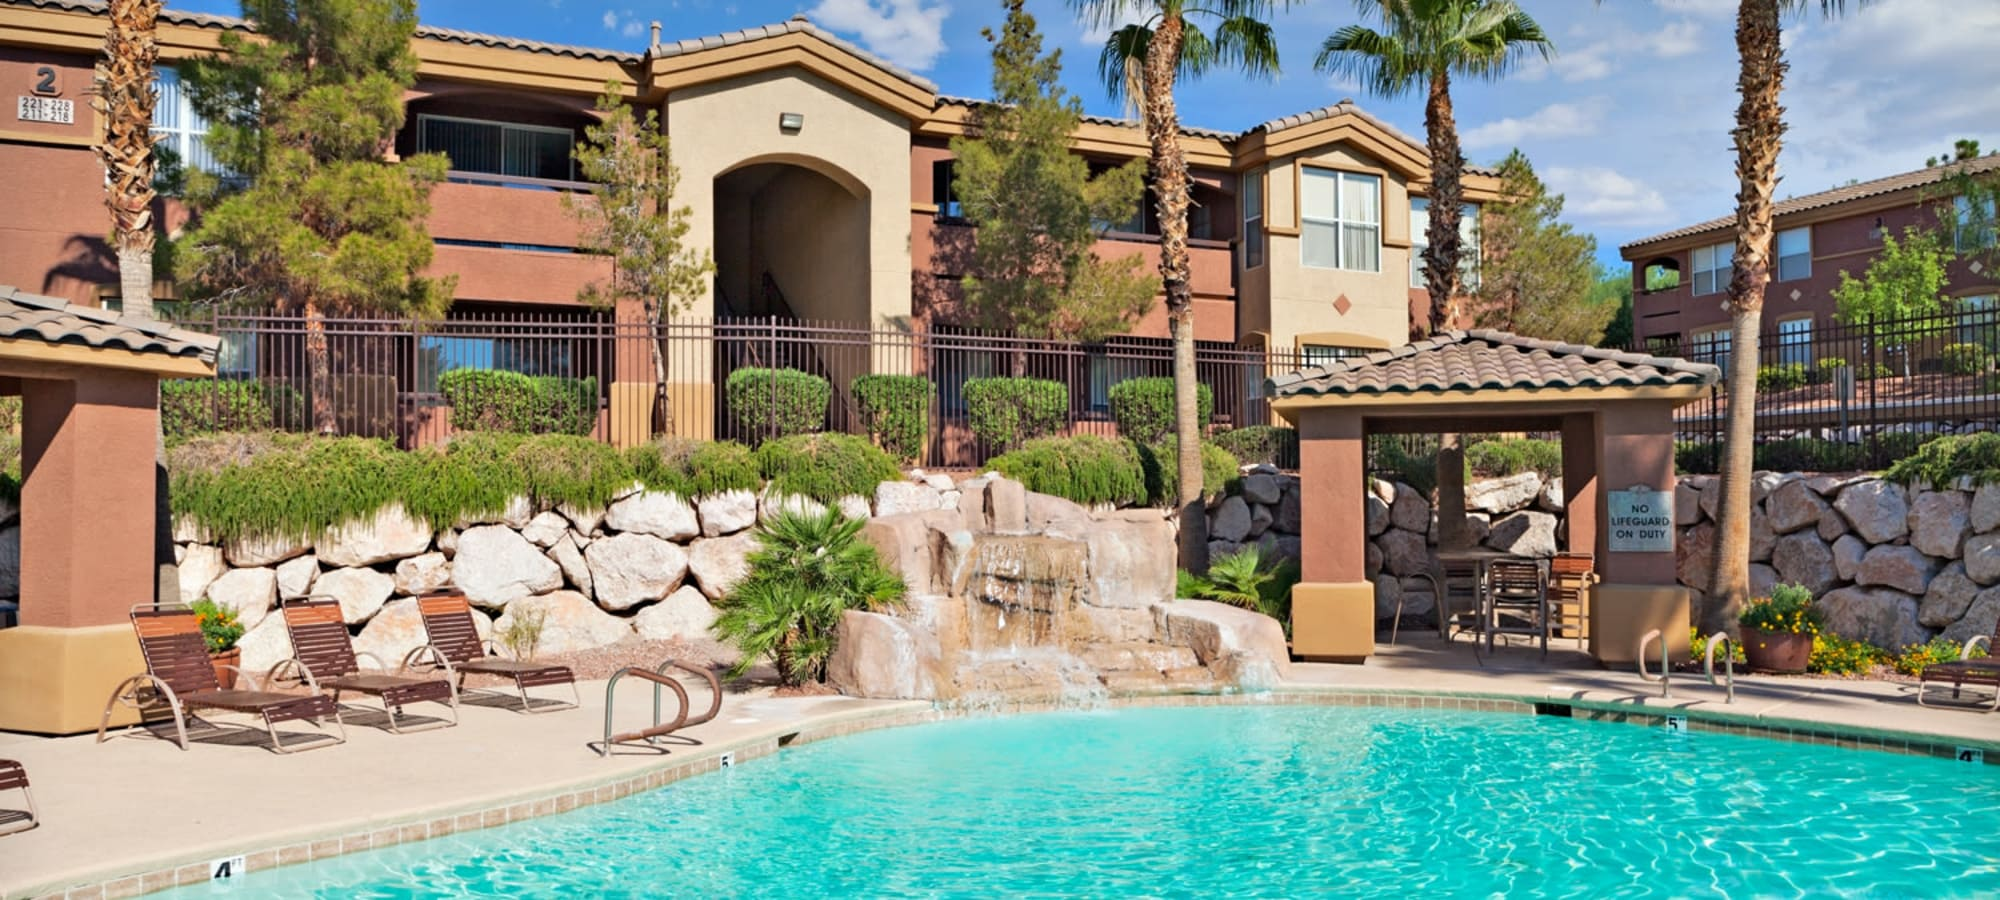 Large sparkling swimming pool in Henderson, Nevada at Allegro at La Entrada